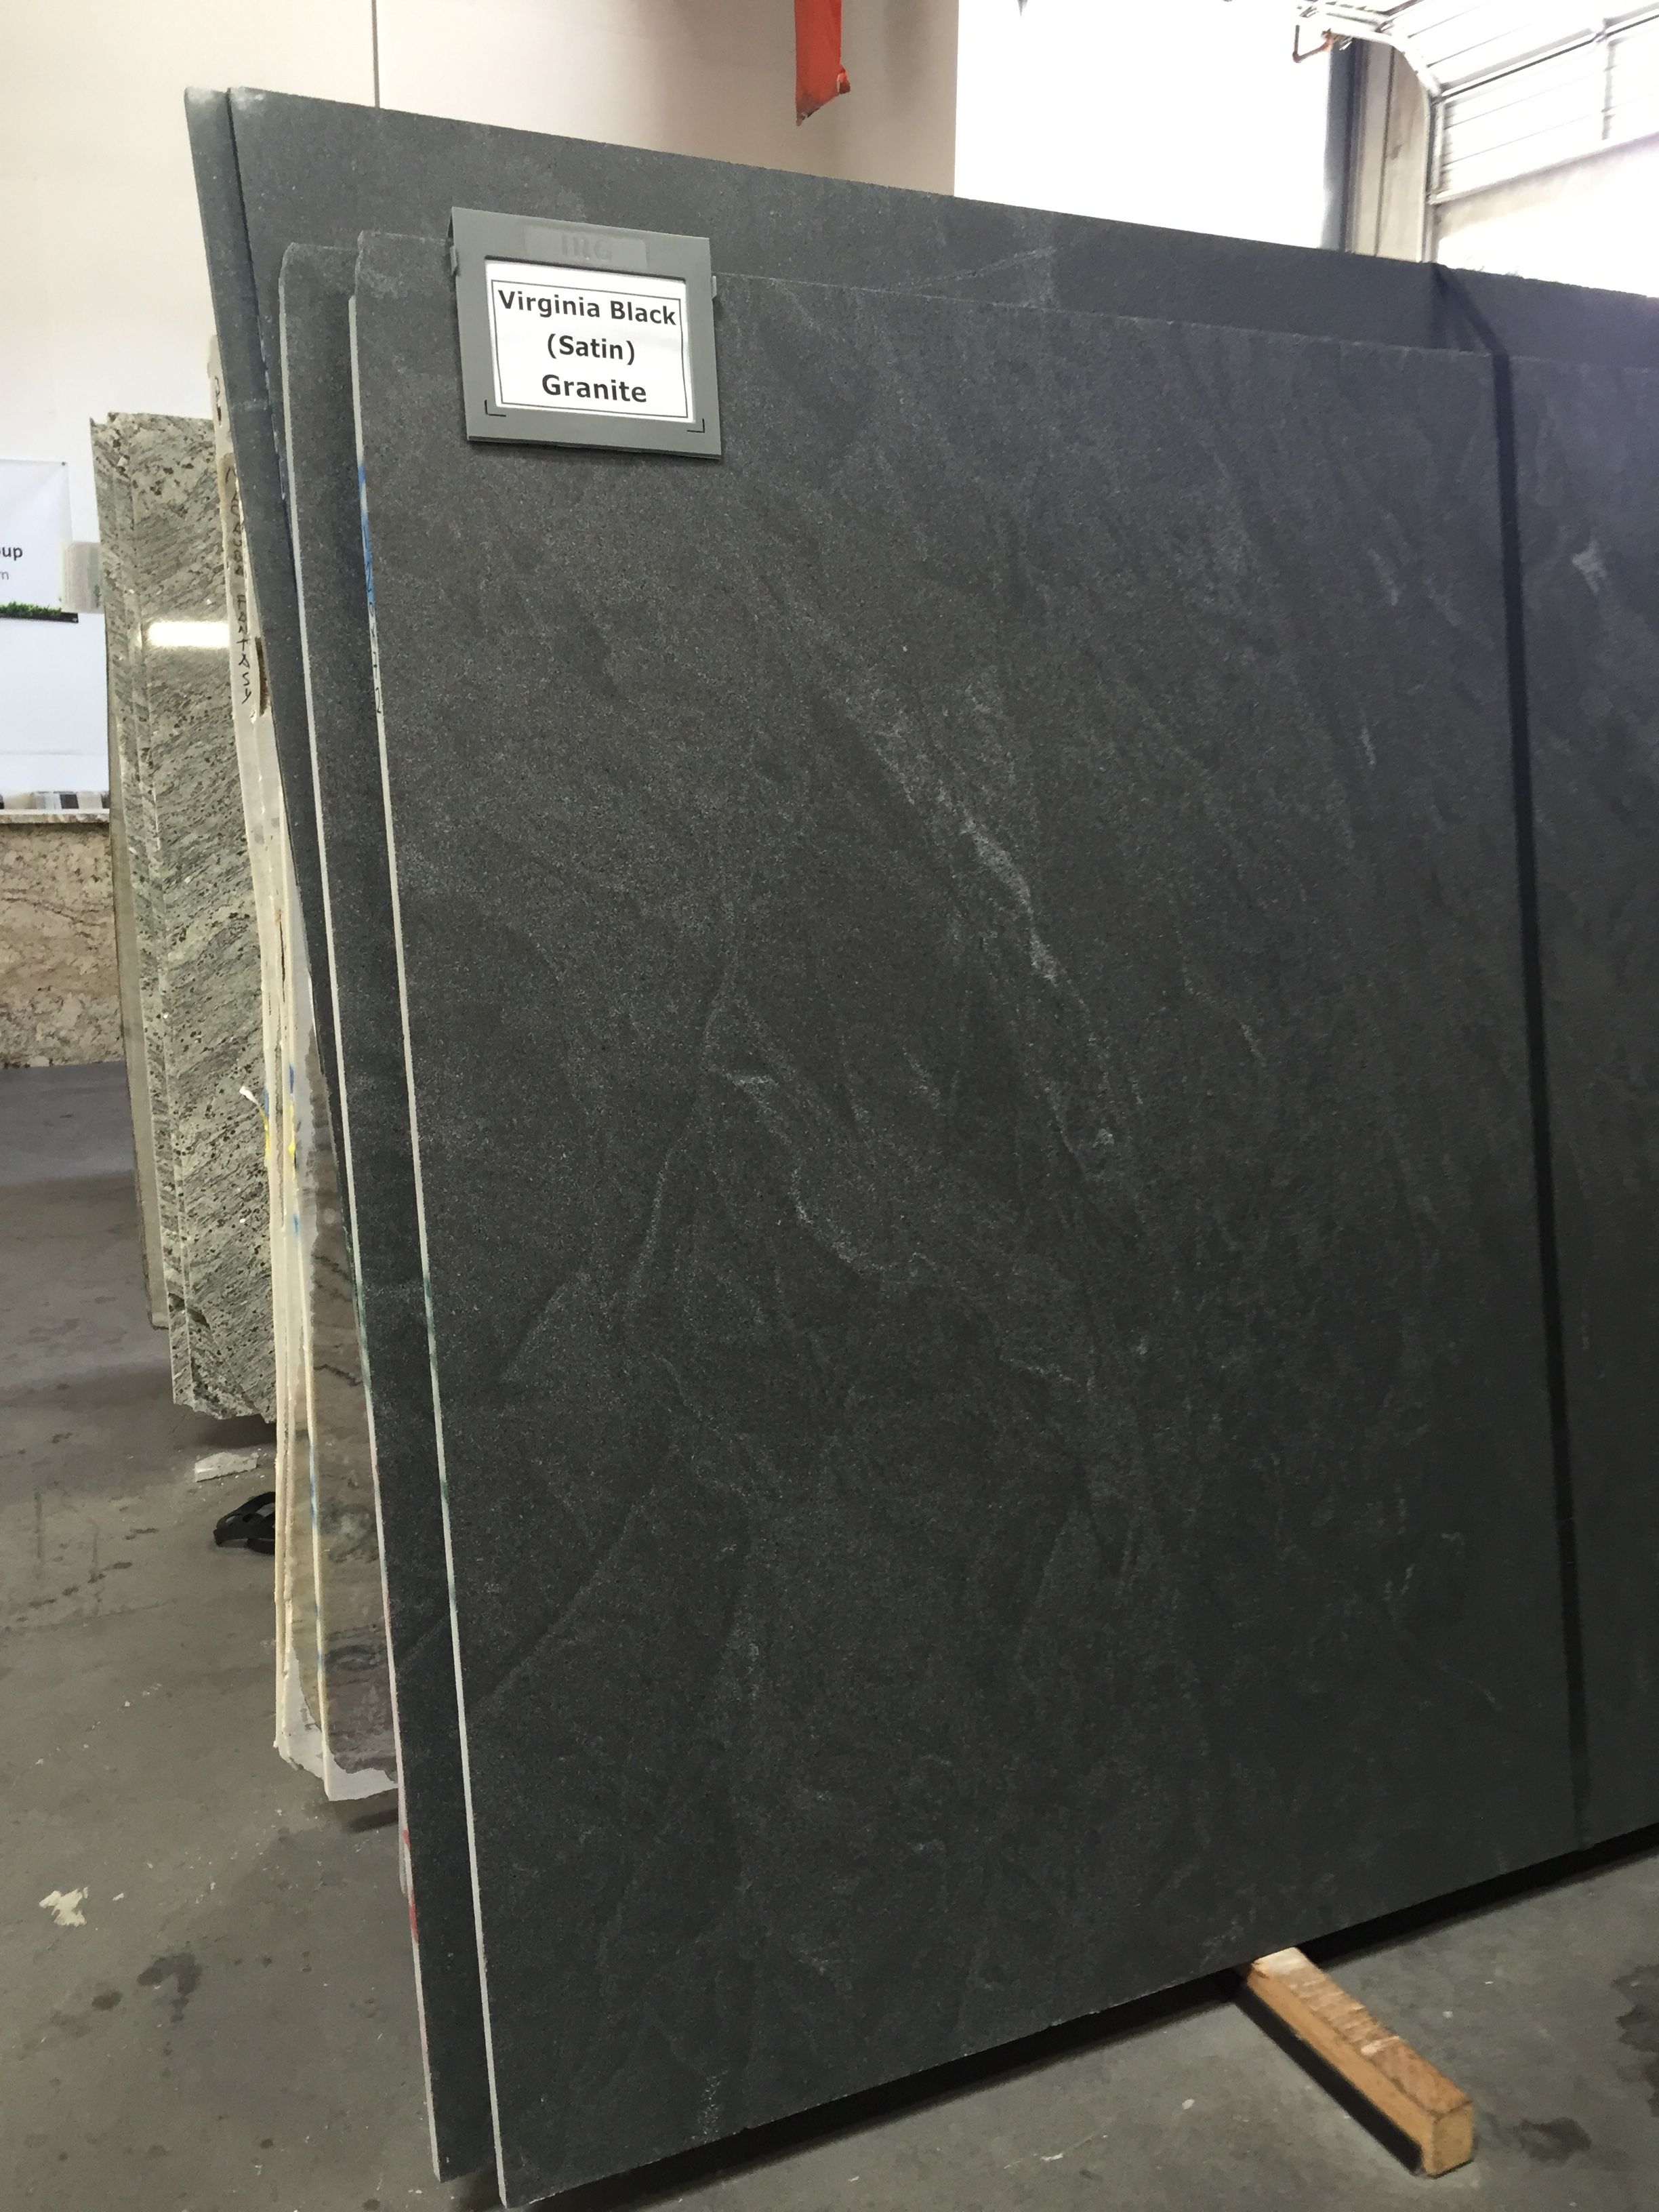 Granit Arbeitsplatte Virginia Black Virginia Black Granite In Satin Or Honed Finish Looks Similar To